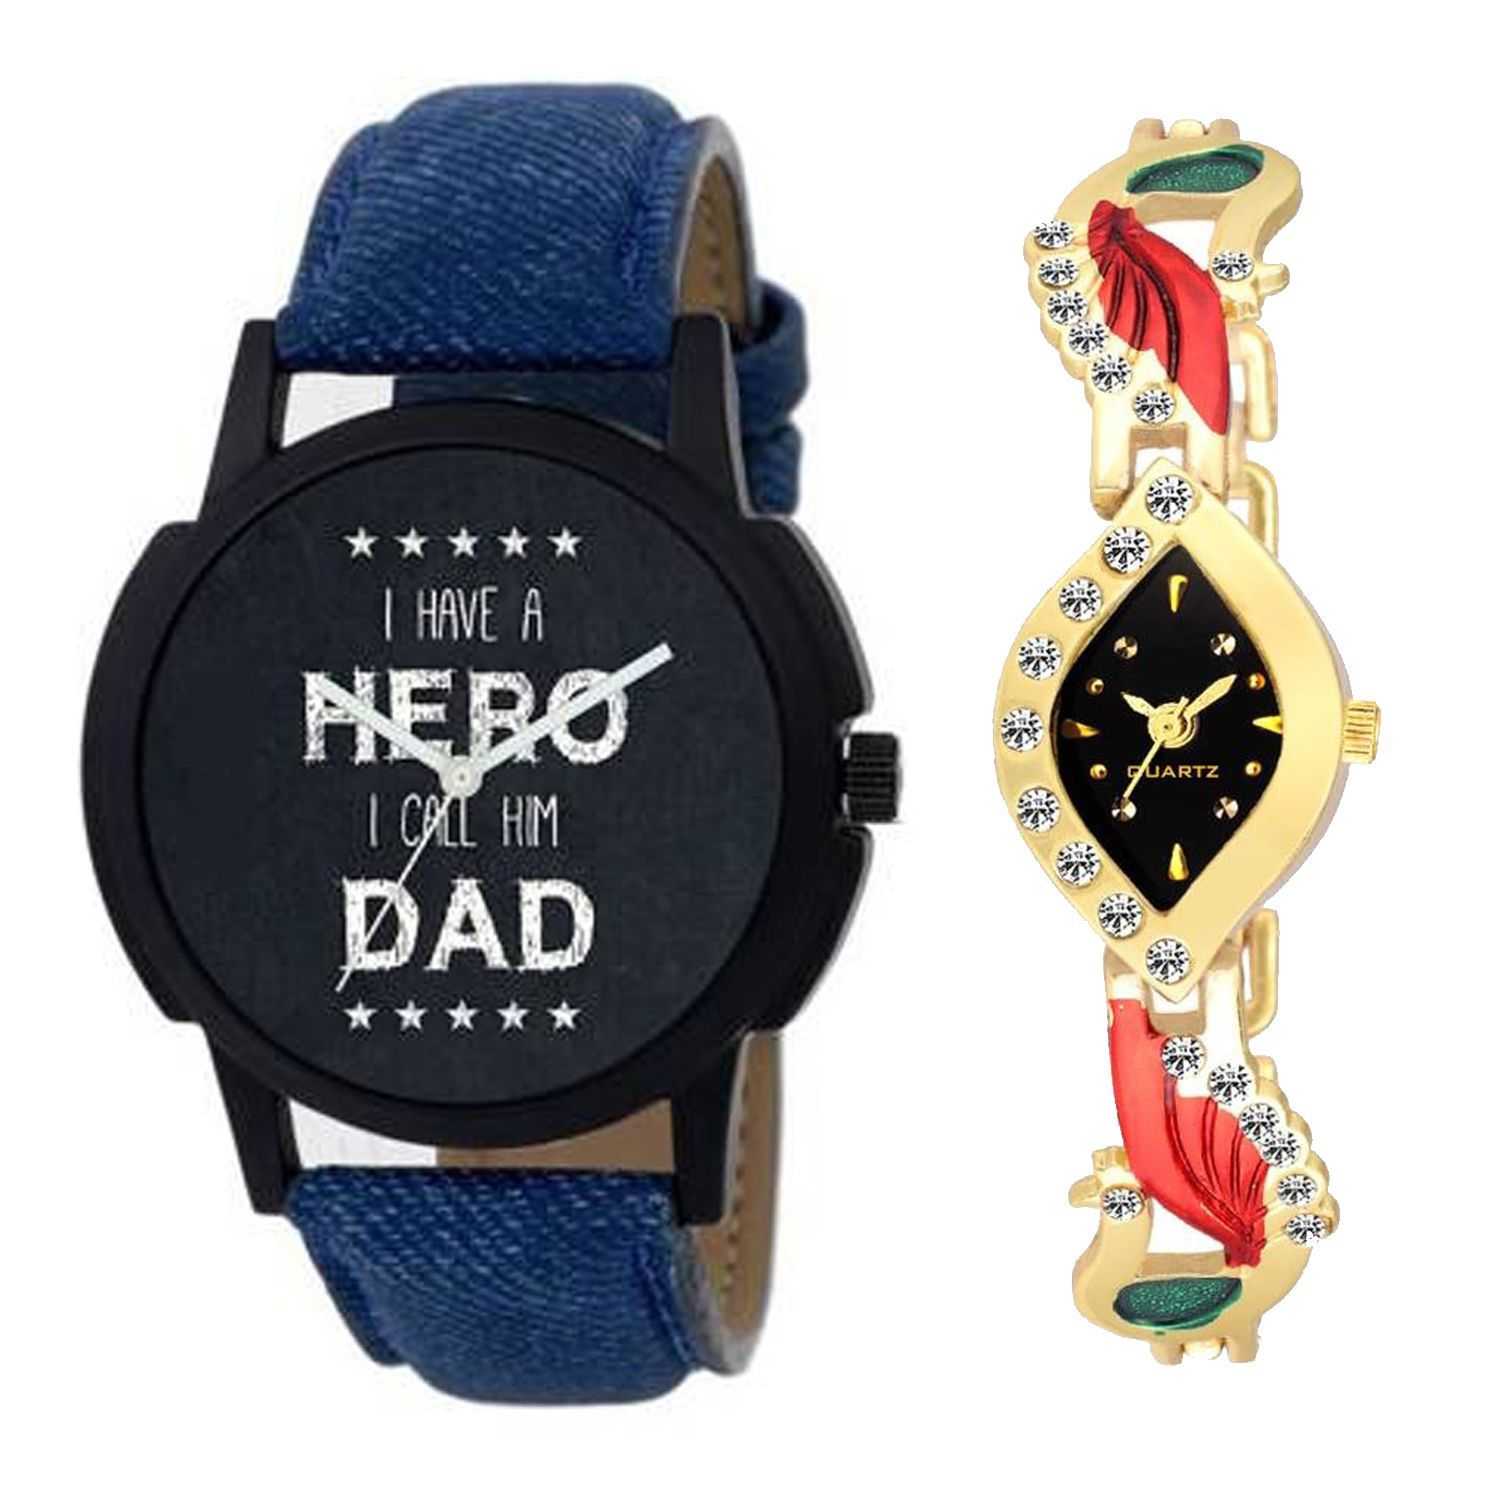 OD C2 077 New Arrival Stylish bo Couple Watch For Boys & Girls